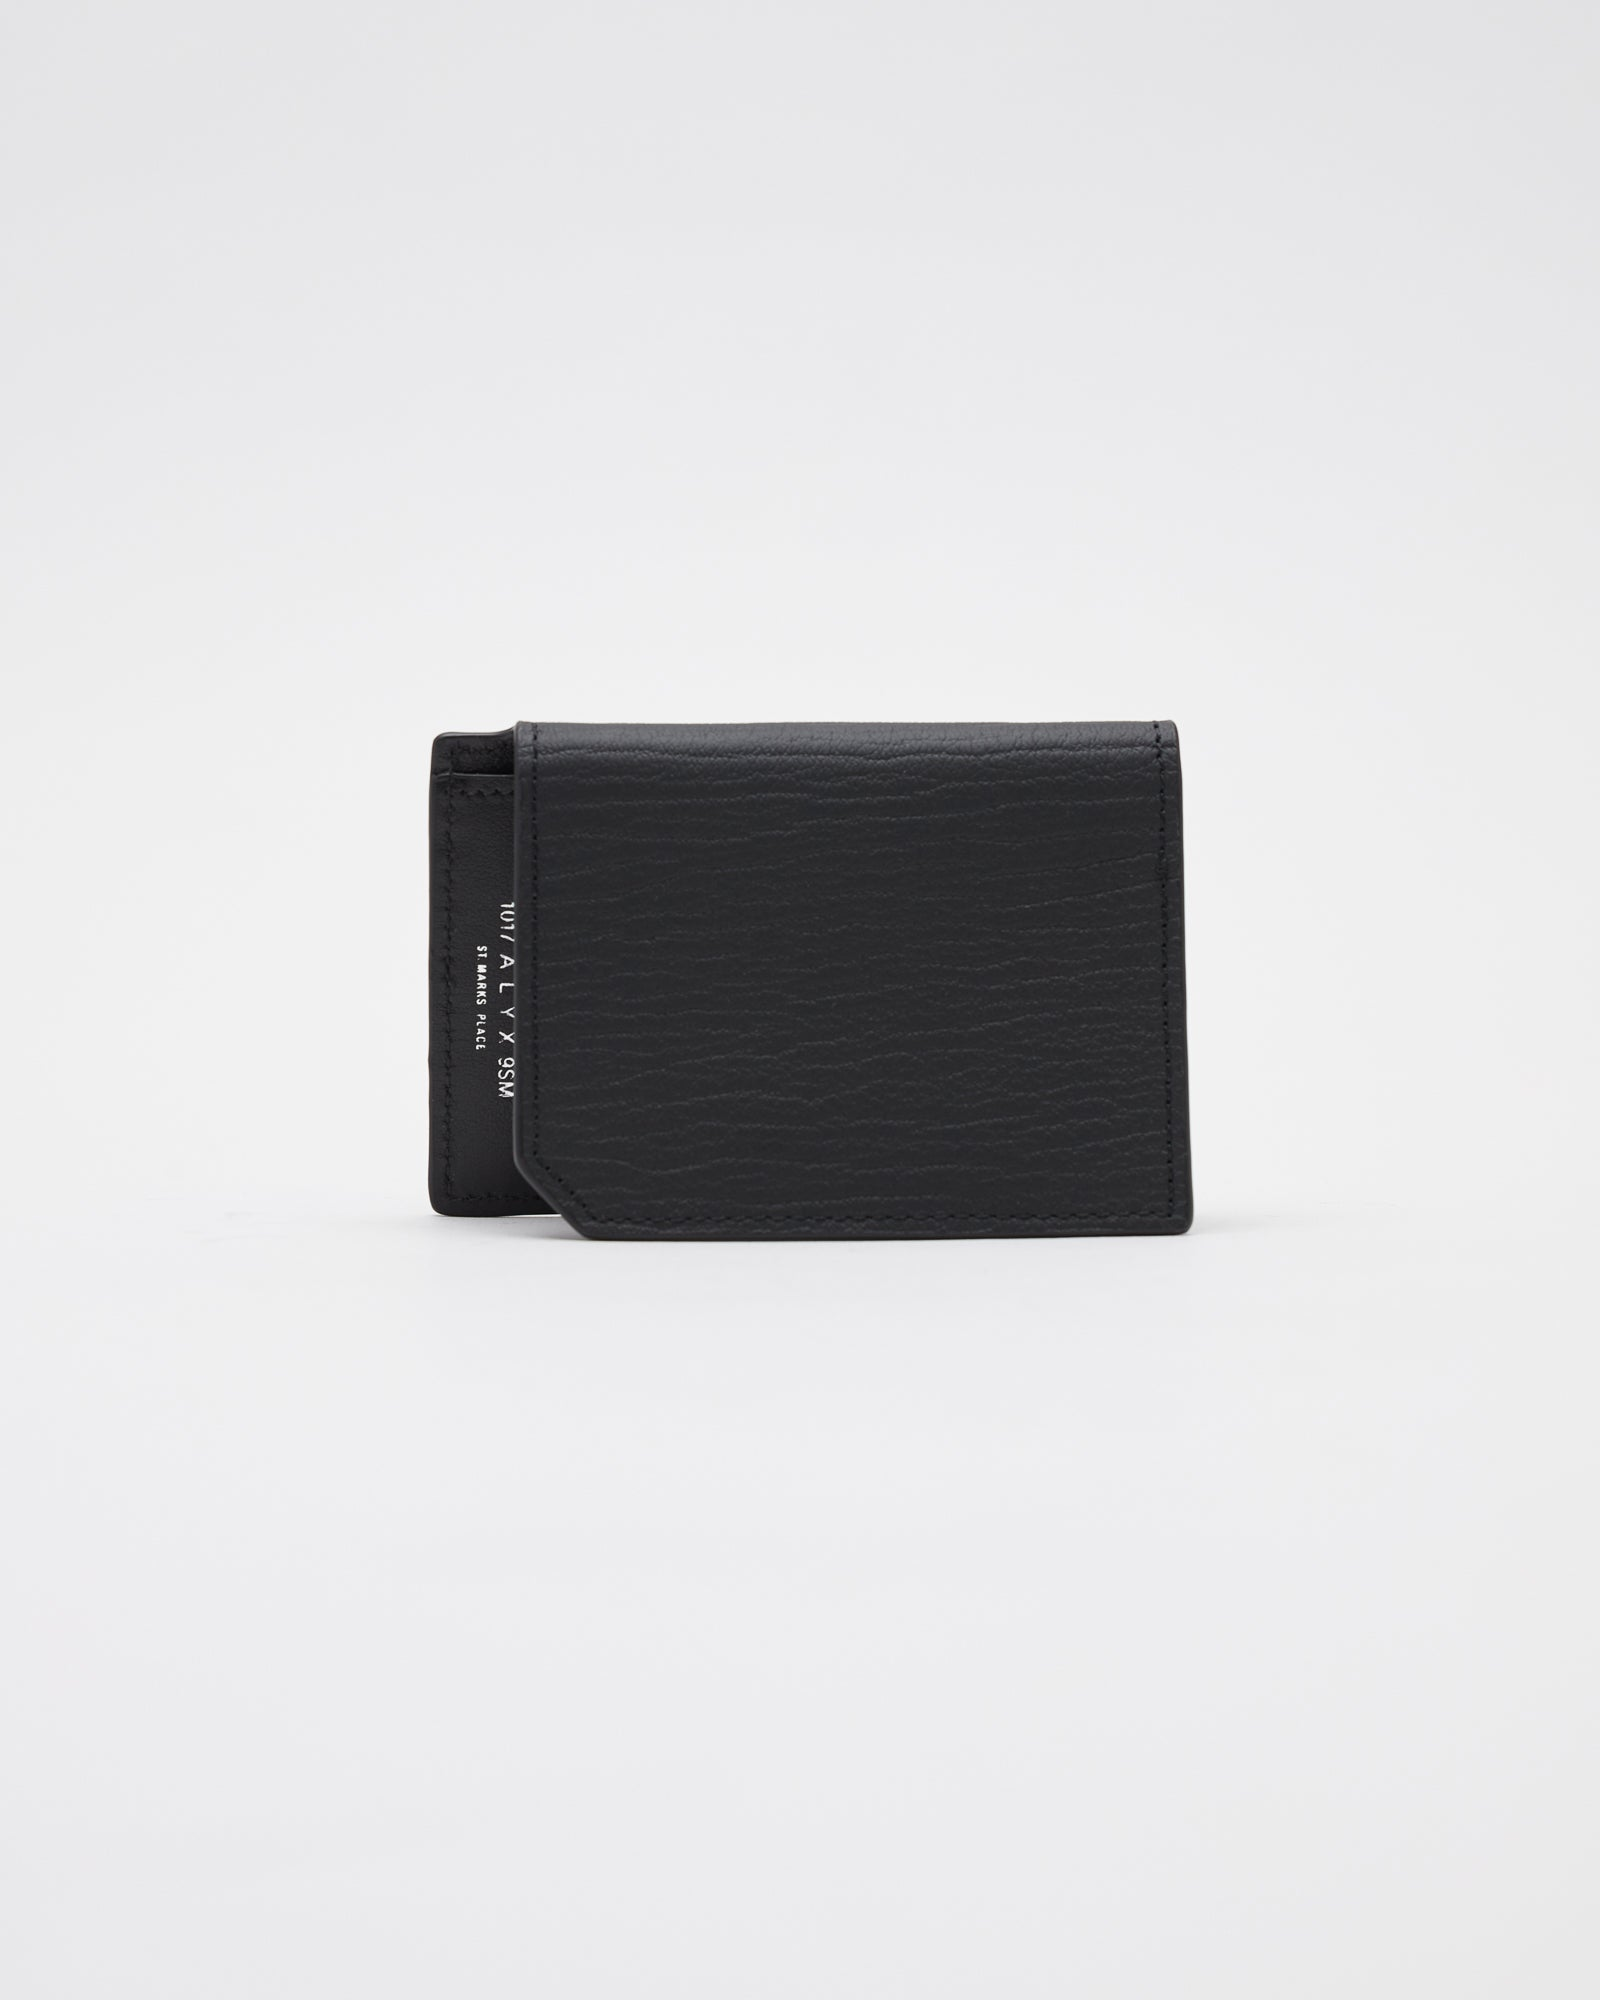 Martin Card Holder in Black